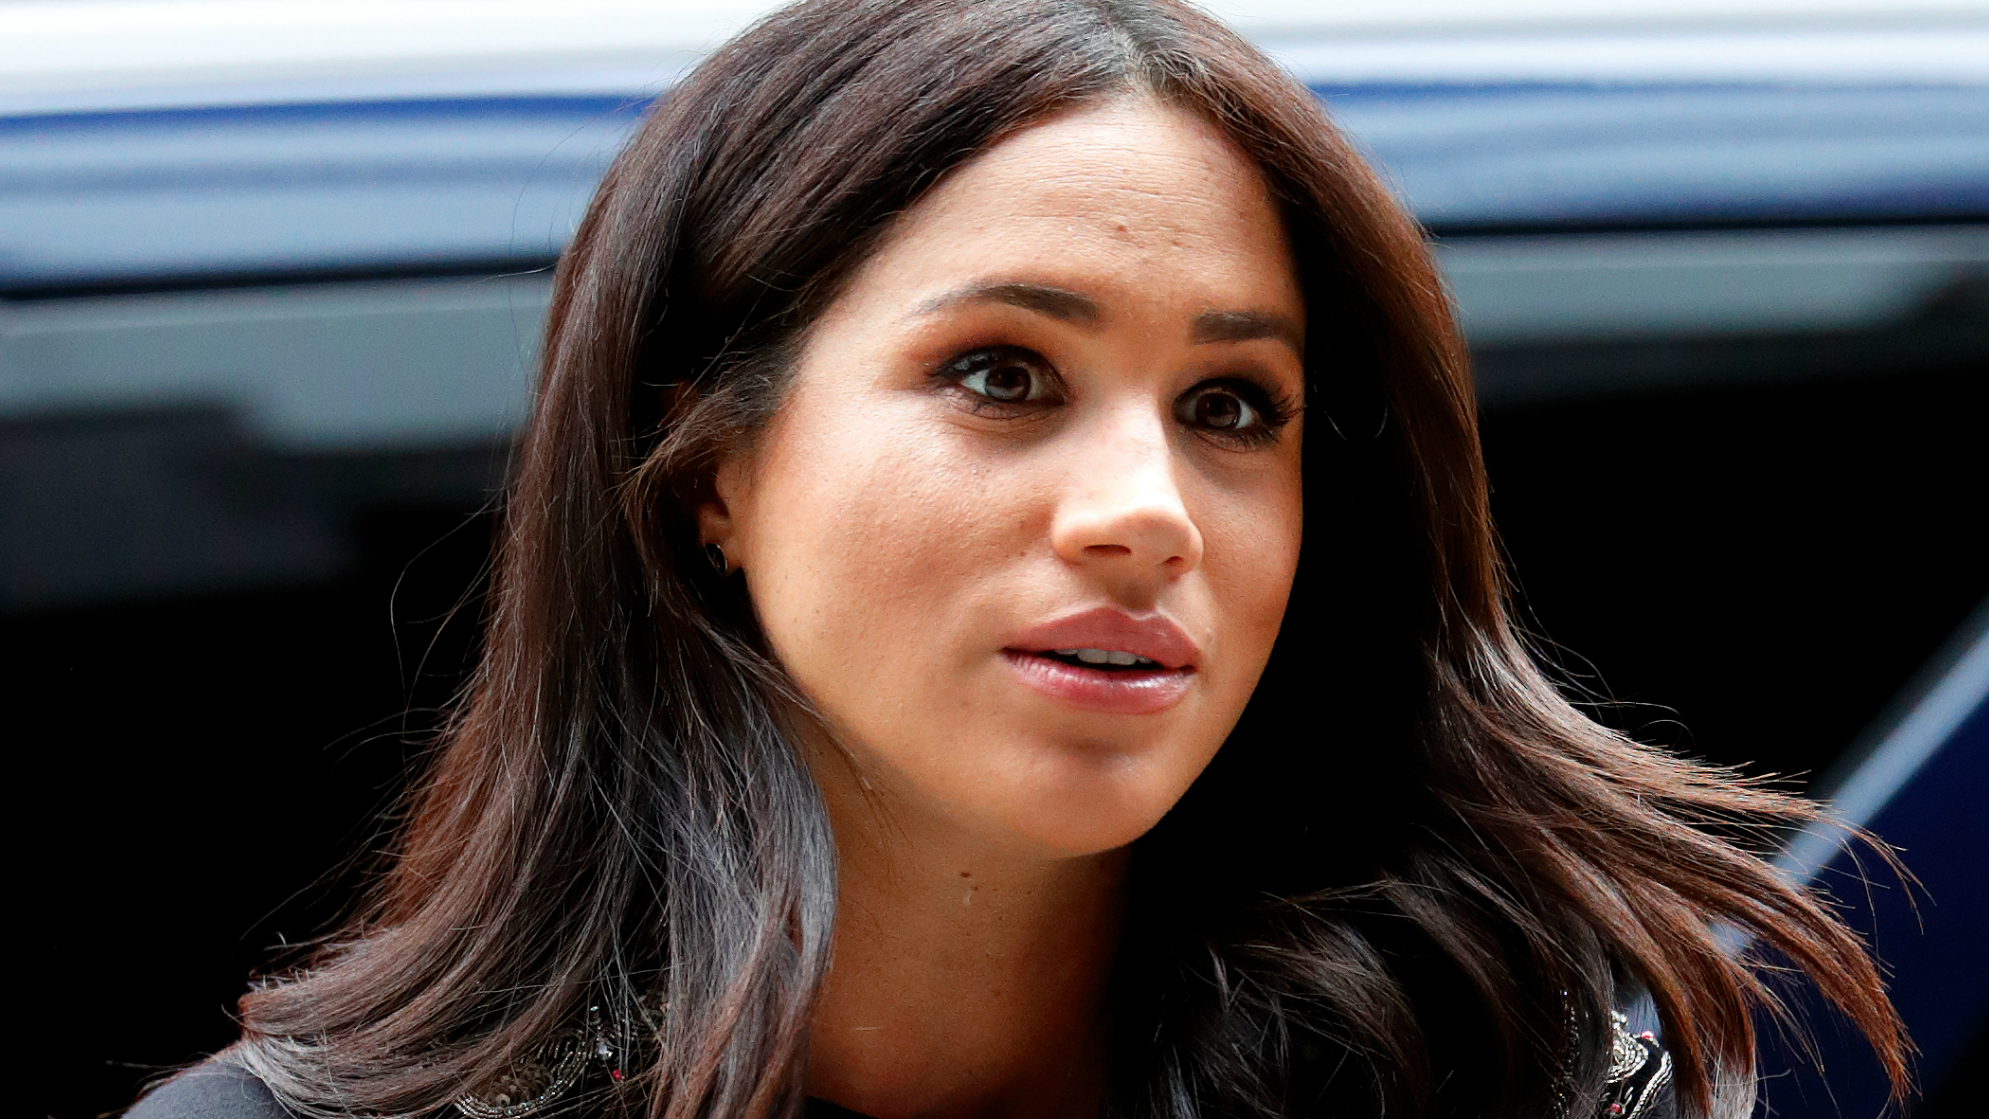 Thomas Markle could be called to testify against Meghan in legal battle